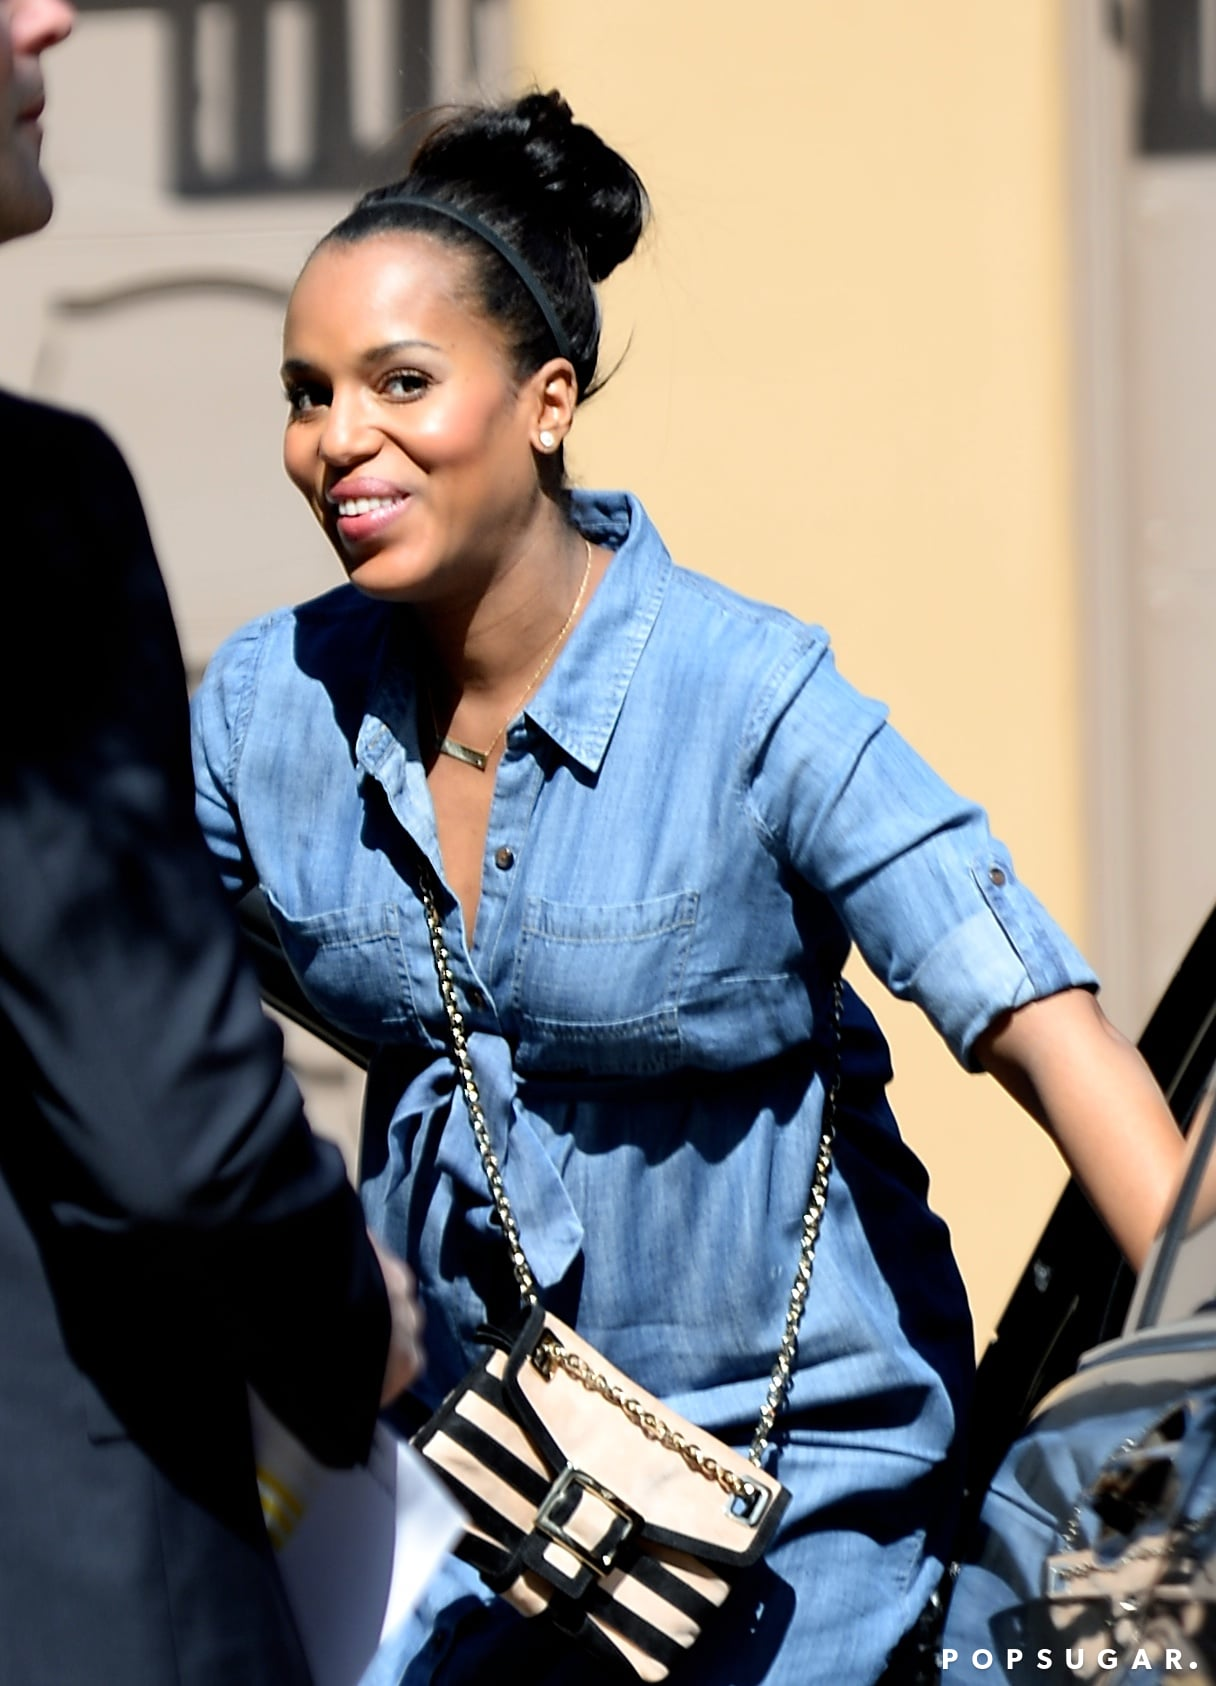 Kerry arrived in a chambray dress.